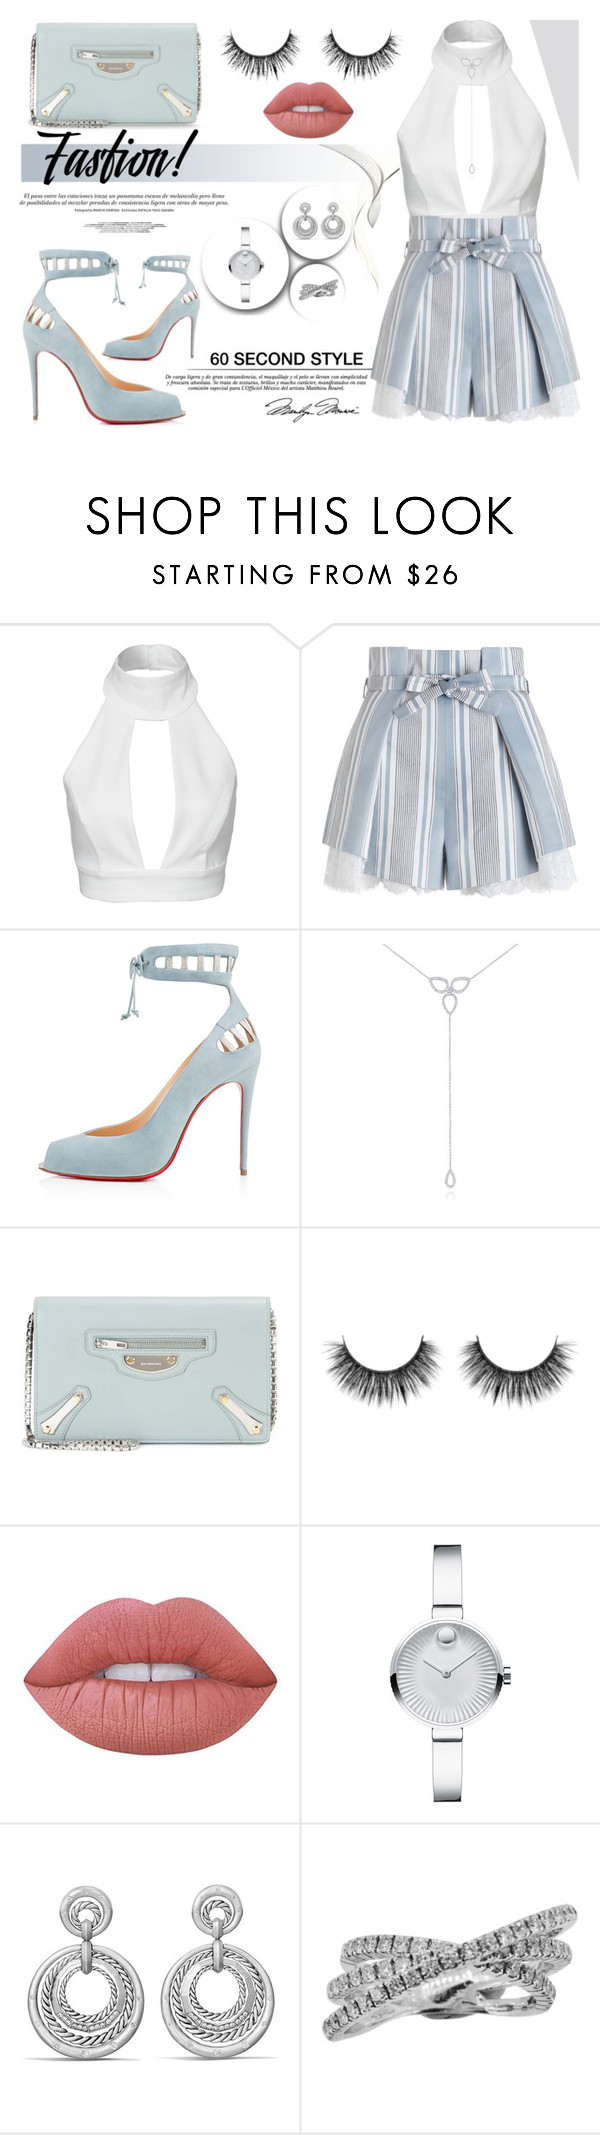 """Perfect Style of Monday"" by yurisnazalieth ❤ liked on Polyvore featuring AQ/AQ, Zimmermann, KC Designs, Balenciaga, Kale, Kerr®, Lime Crime, Movado and David Yurman"